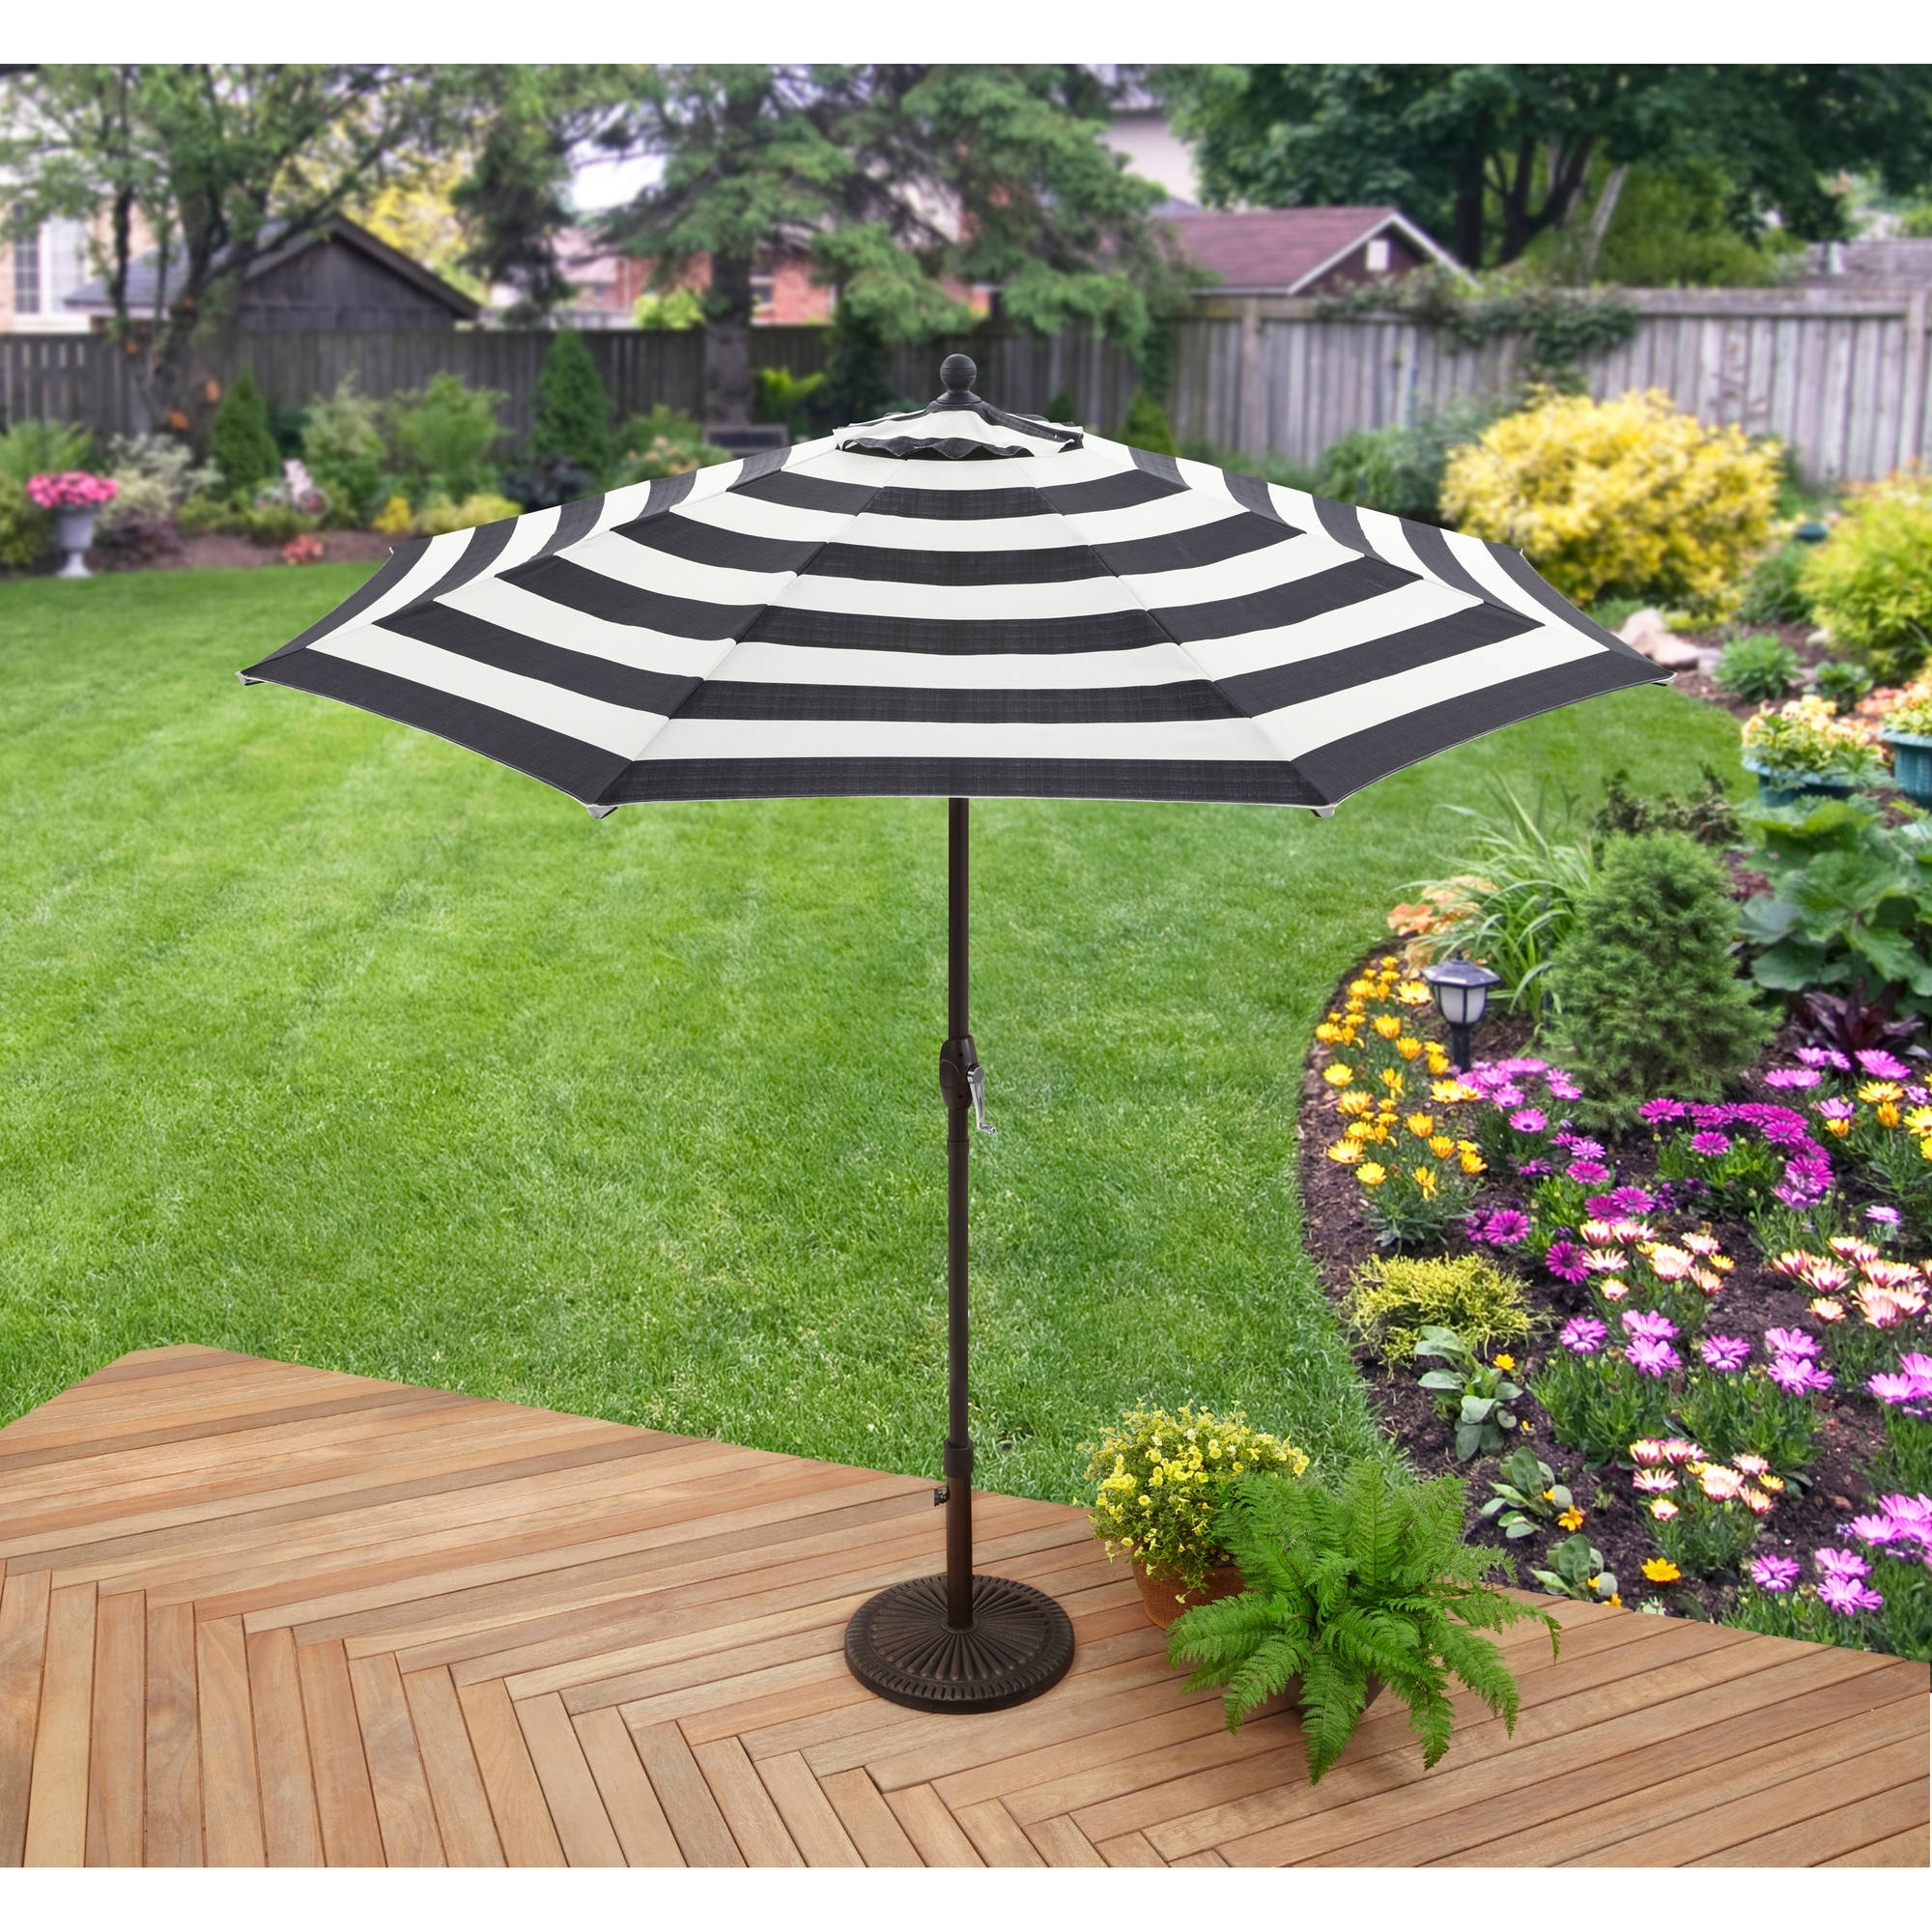 Best And Newest Sunbrella Patio Umbrellas At Walmart In Better Homes And Gardens 9' Market Umbrella, Cabana Stripe – Walmart (View 4 of 20)